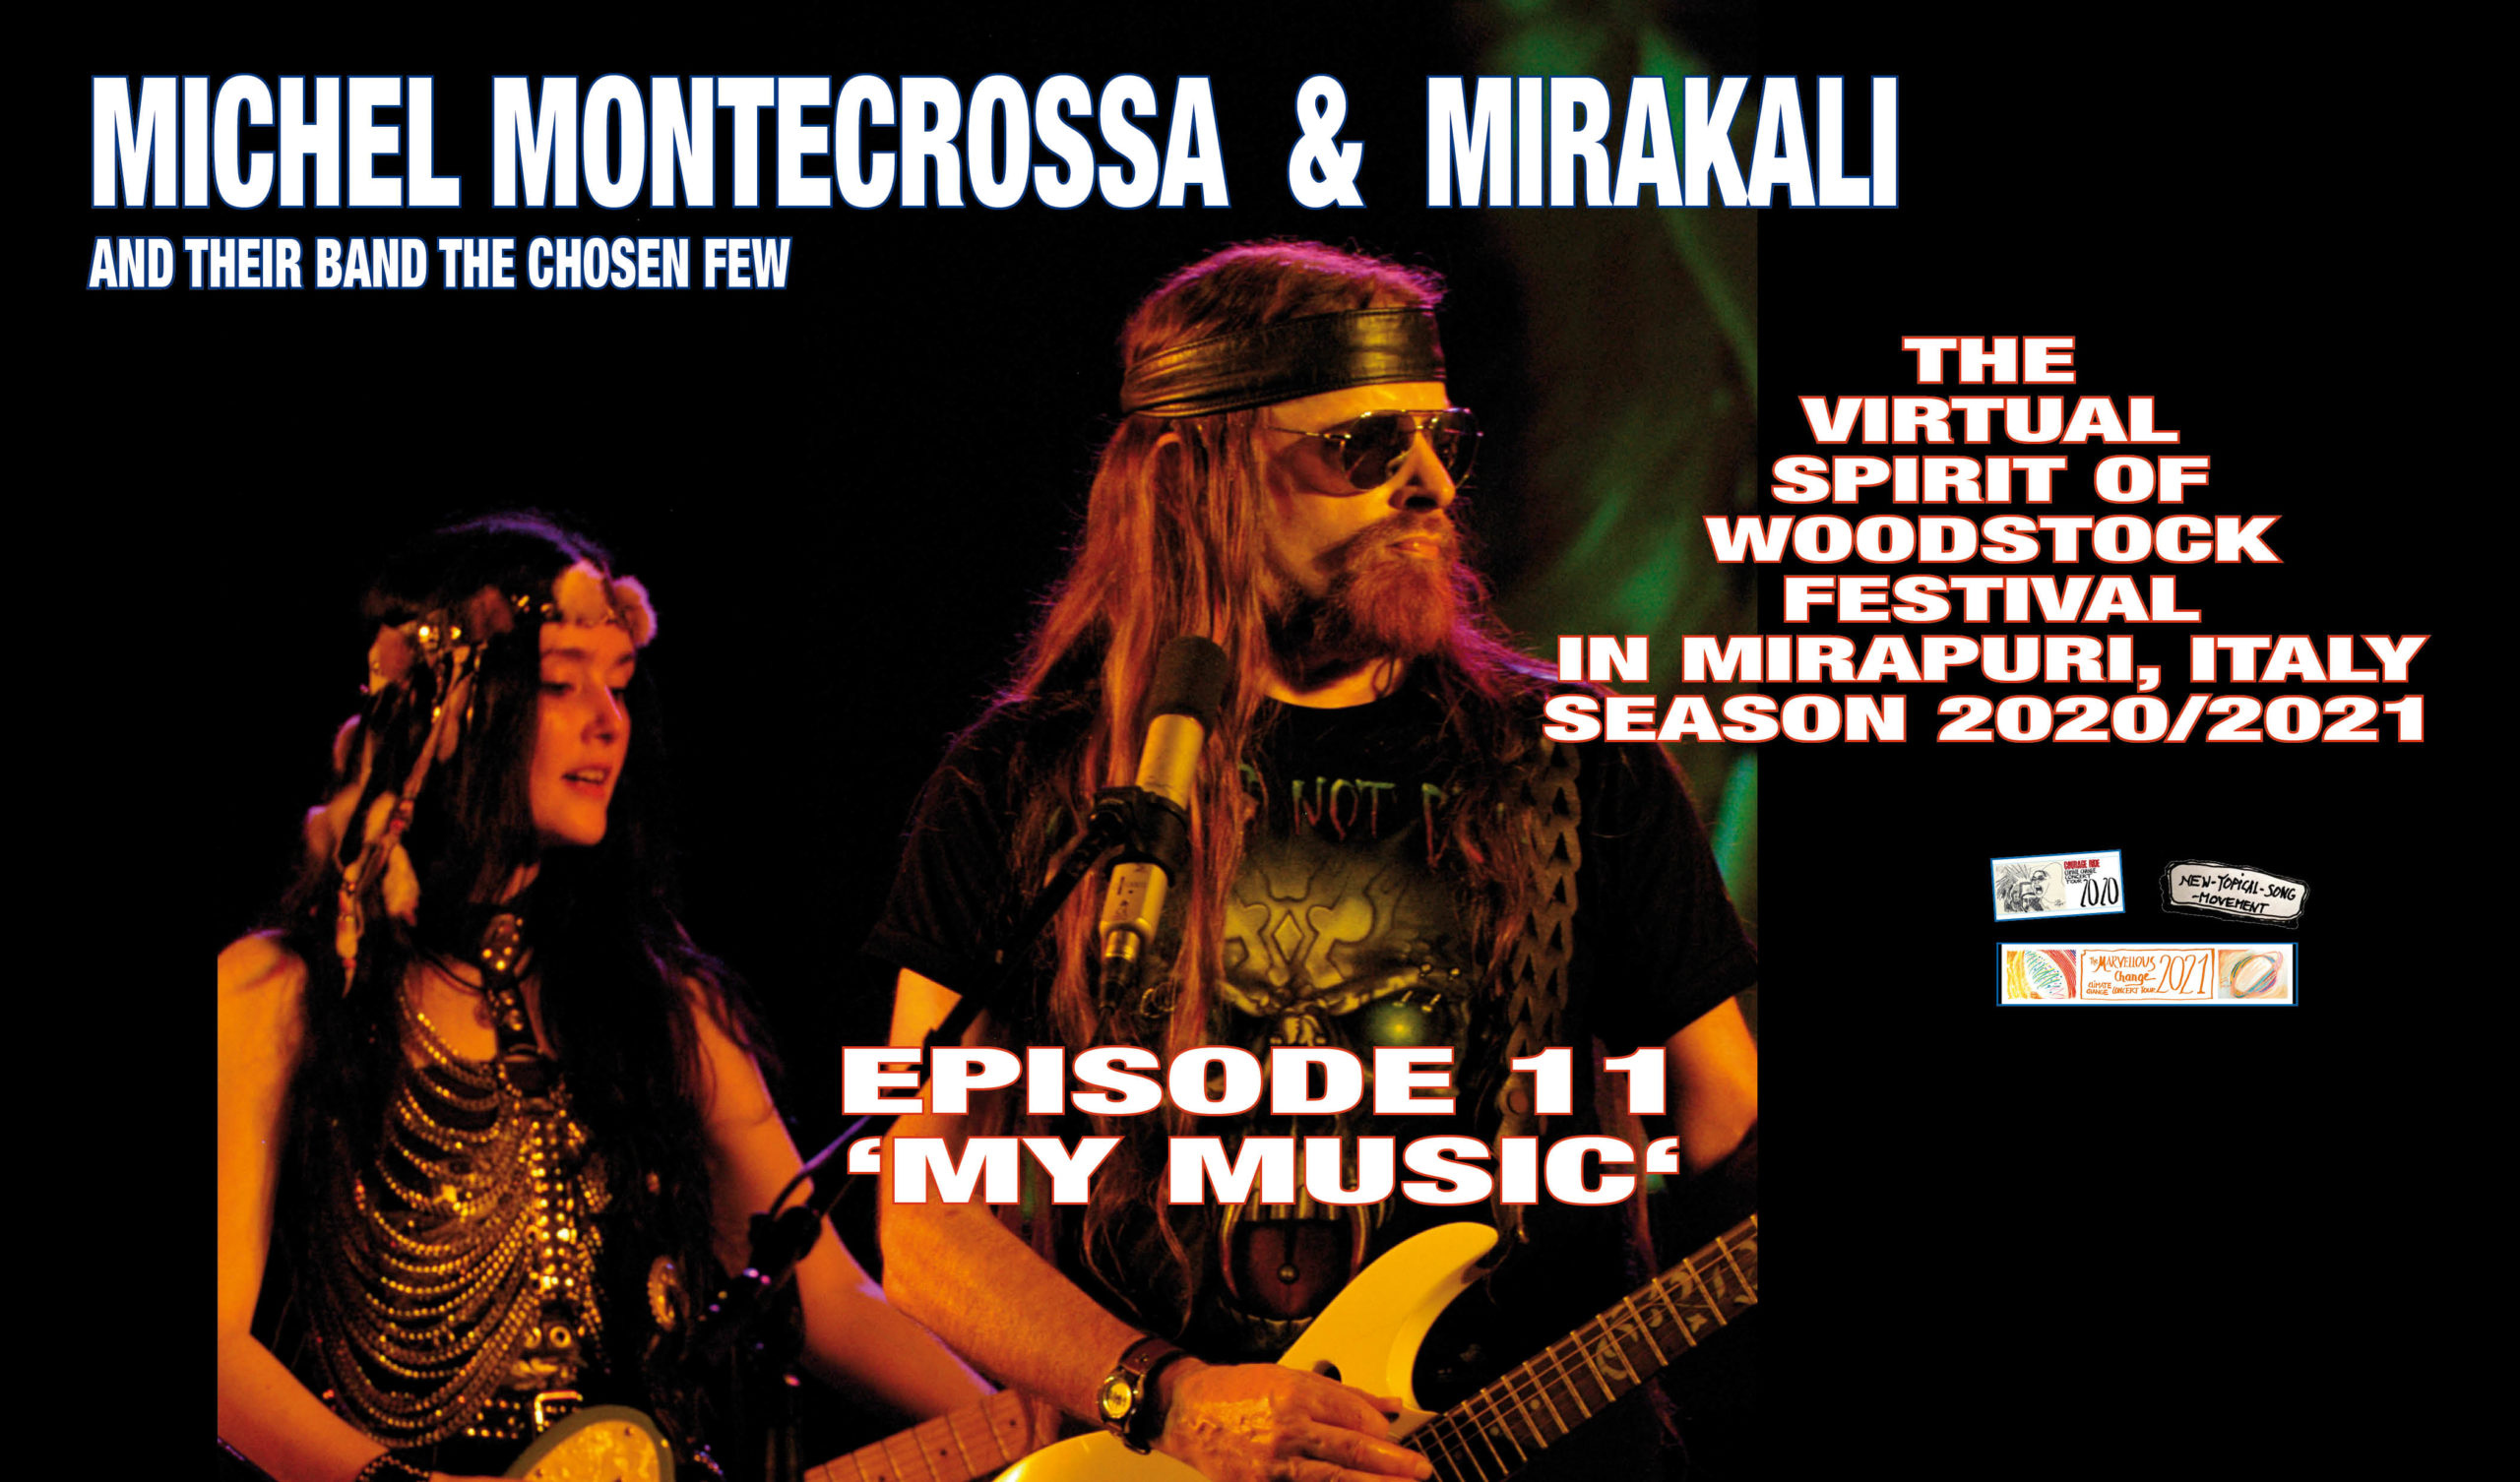 The Virtual Spirit of Woodstock Festival in Mirapuri, Italy Season 2020/2021 Episode 11 'My Music'